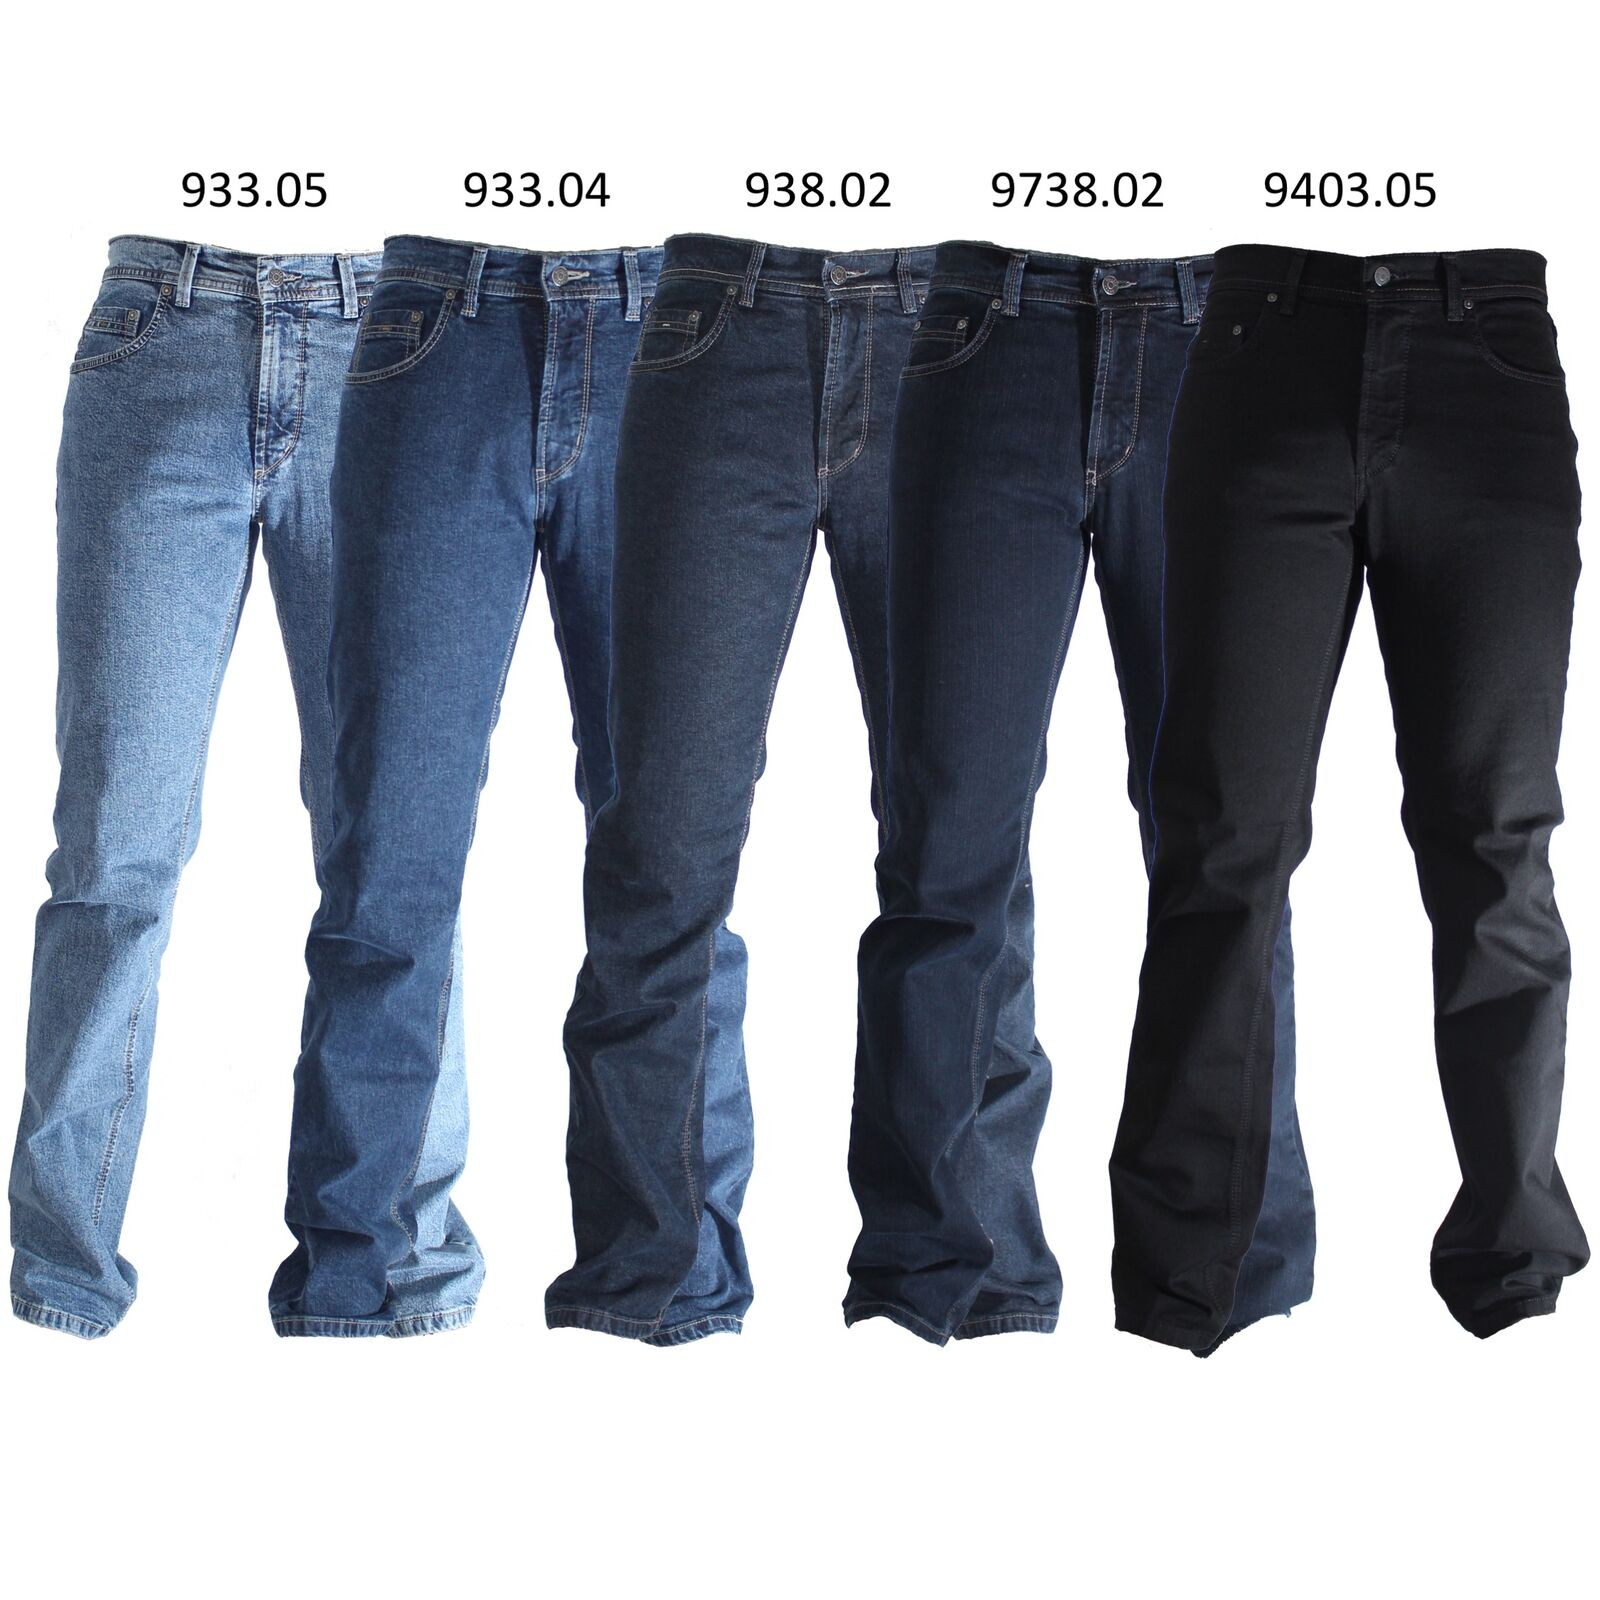 Купить Pioneer Rando Modell 1680, Regular Fit Stretch Jeans, на eBay ... f25d3138d5